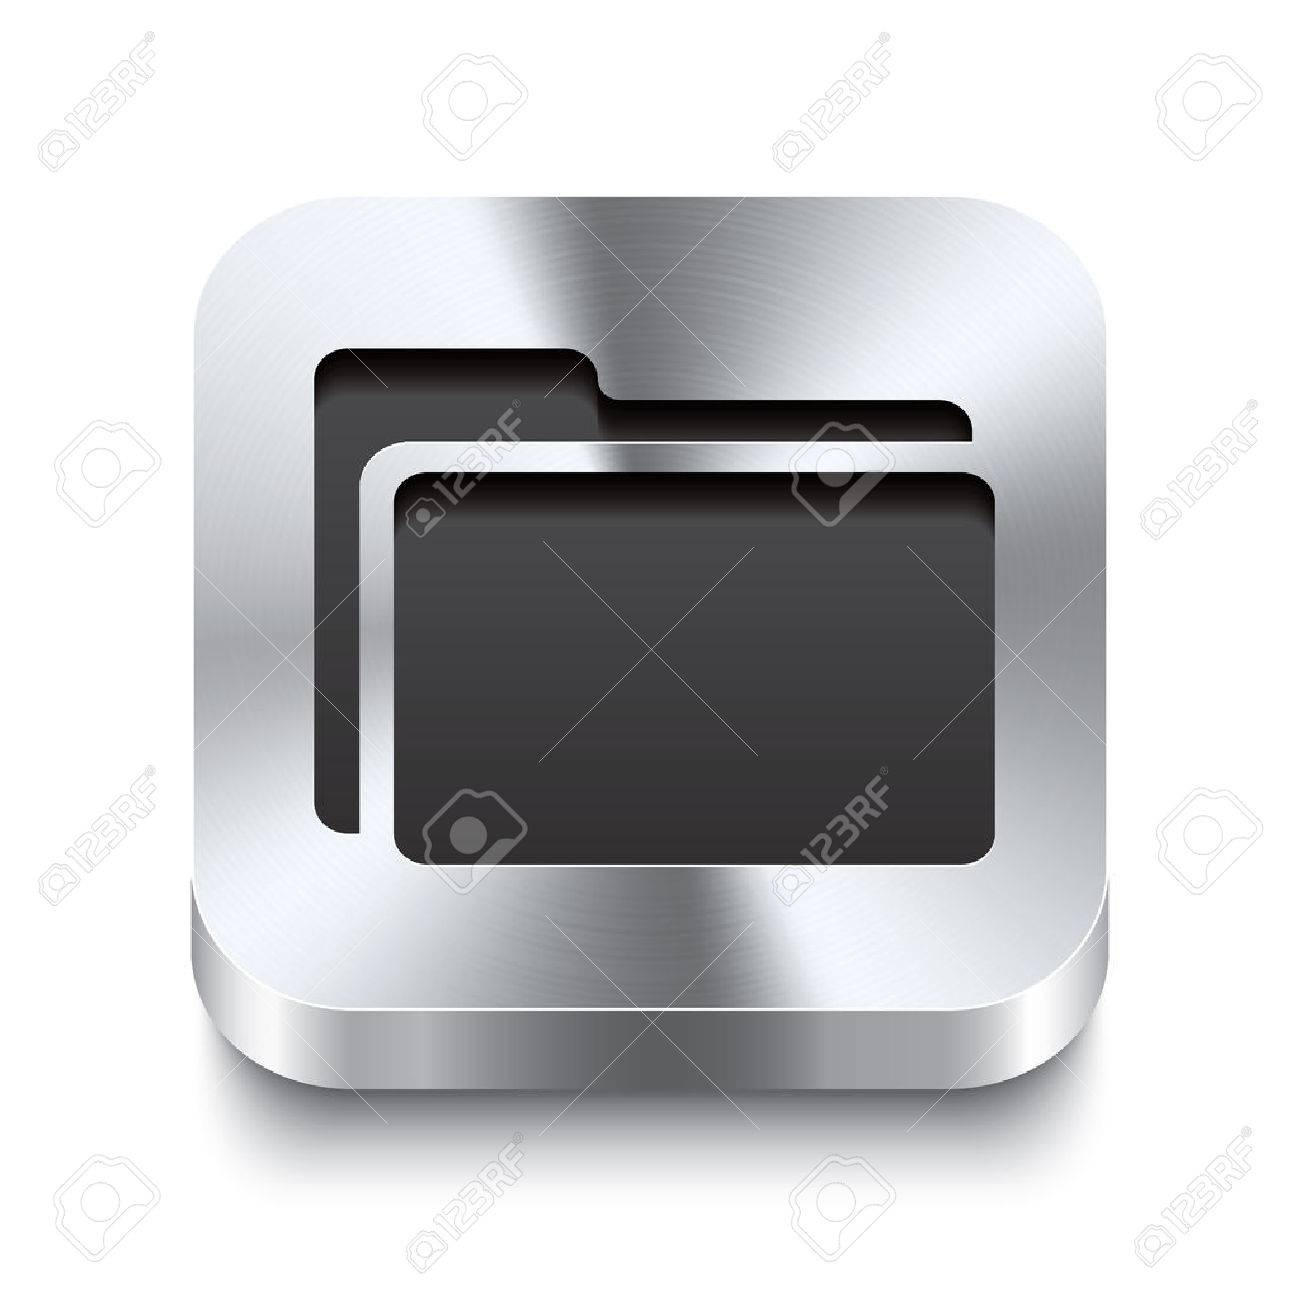 Realistic 3d vector illustration of a square metal button with a folder icon  This brushed steel button is the perfect switch for navigation in any user interface Stock Vector - 23313864